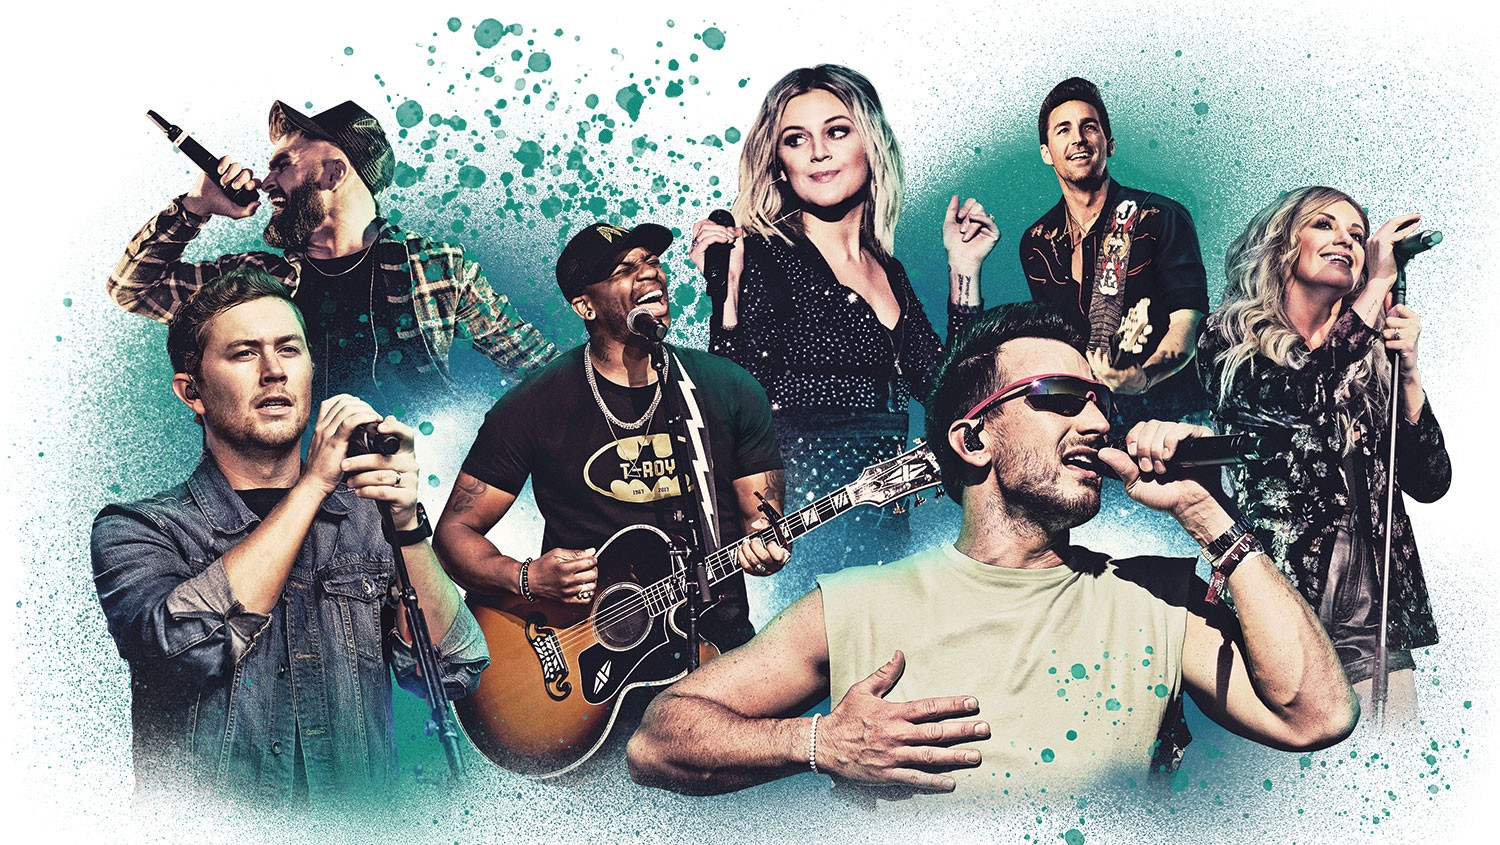 Clockwise from top left: Dylan Scott, Kelsea Ballerini, Jake Owen, Carly Pearce, Russell Dickerson, Jimmie Allen and Scotty McCreery.